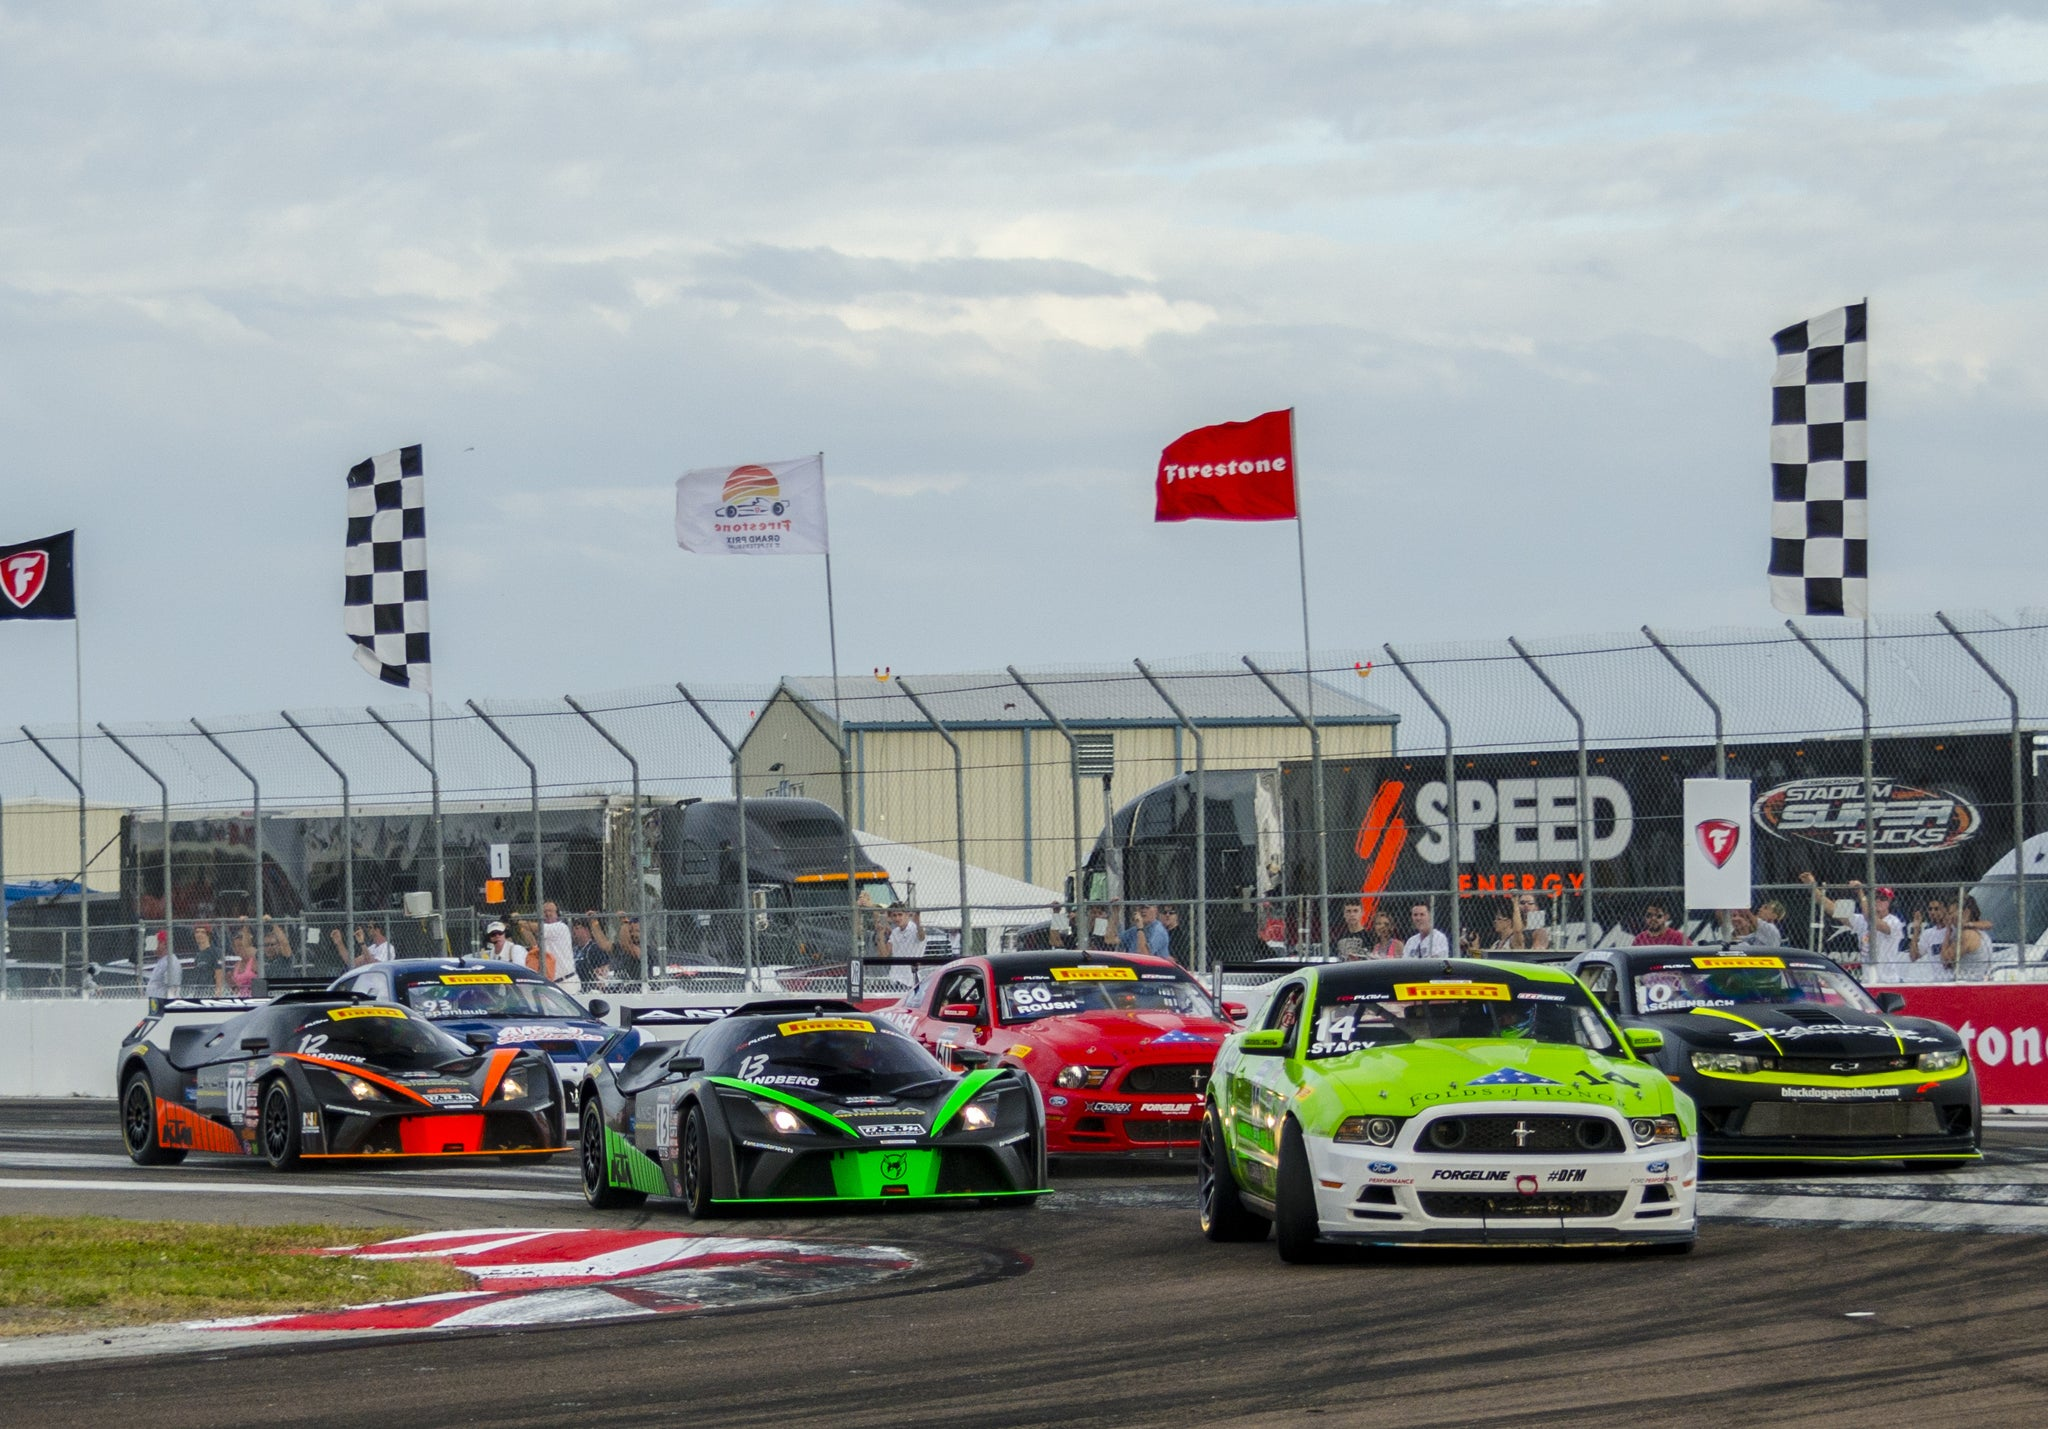 ANSA MOTORSPORTS RETURNS TO PIRELLI WORLD CHALLENGE TO DEFEND GTS TITLE